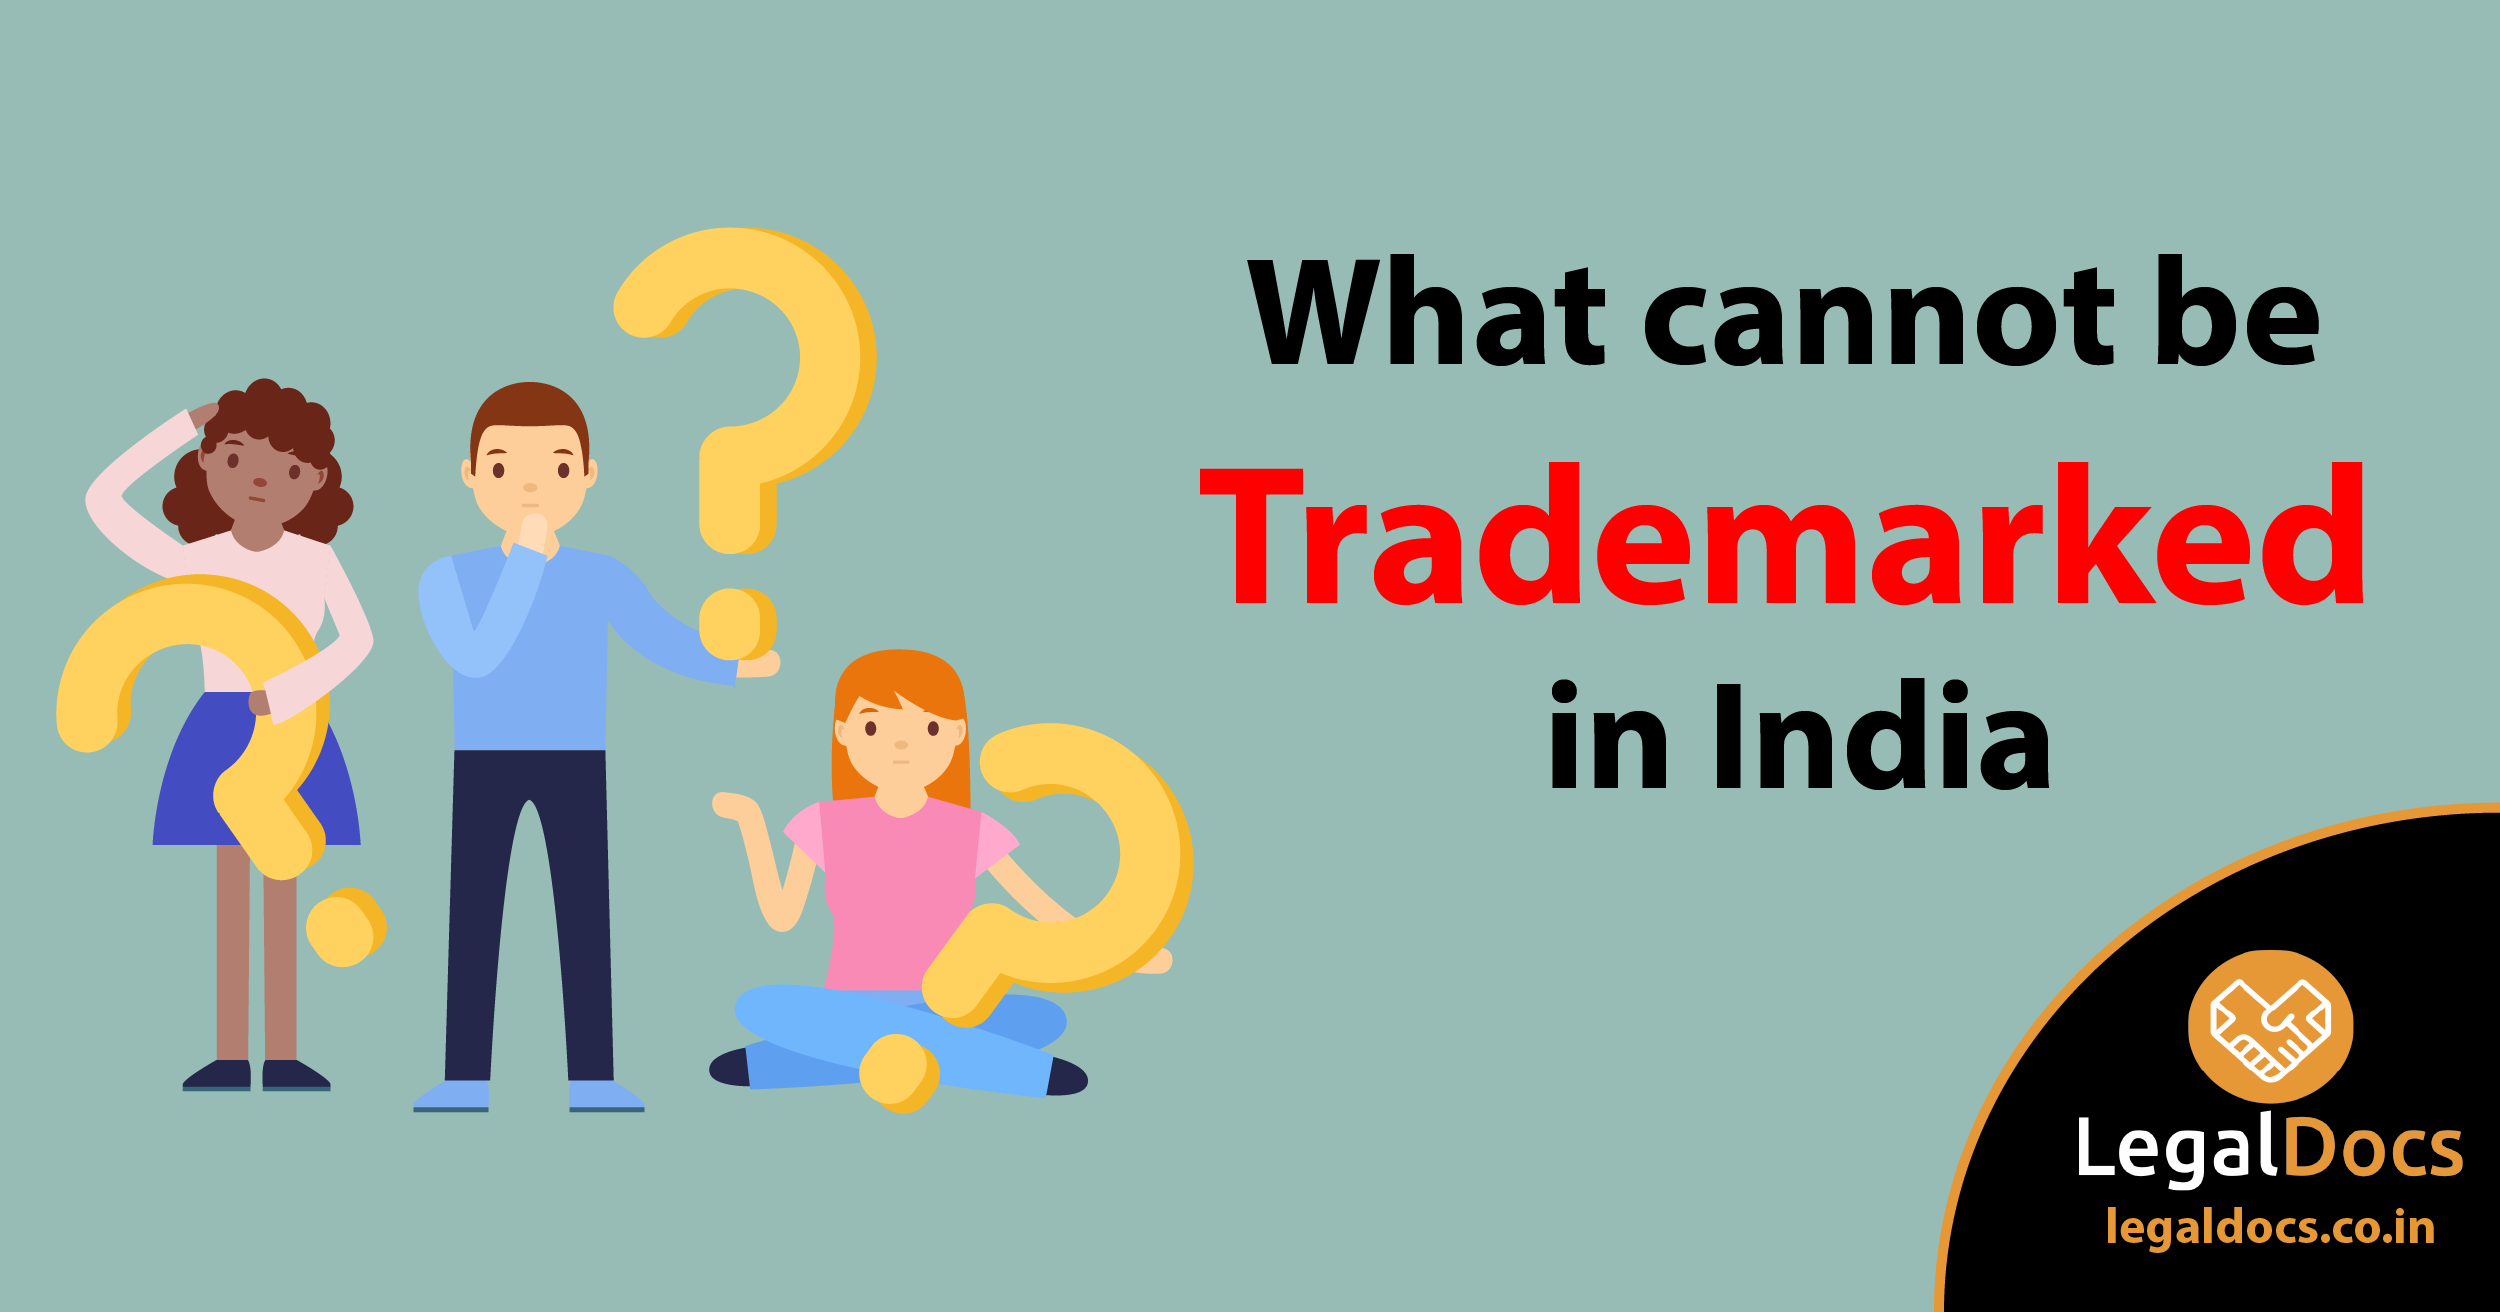 What Cannot be Trademarked in India? - LegalDocs